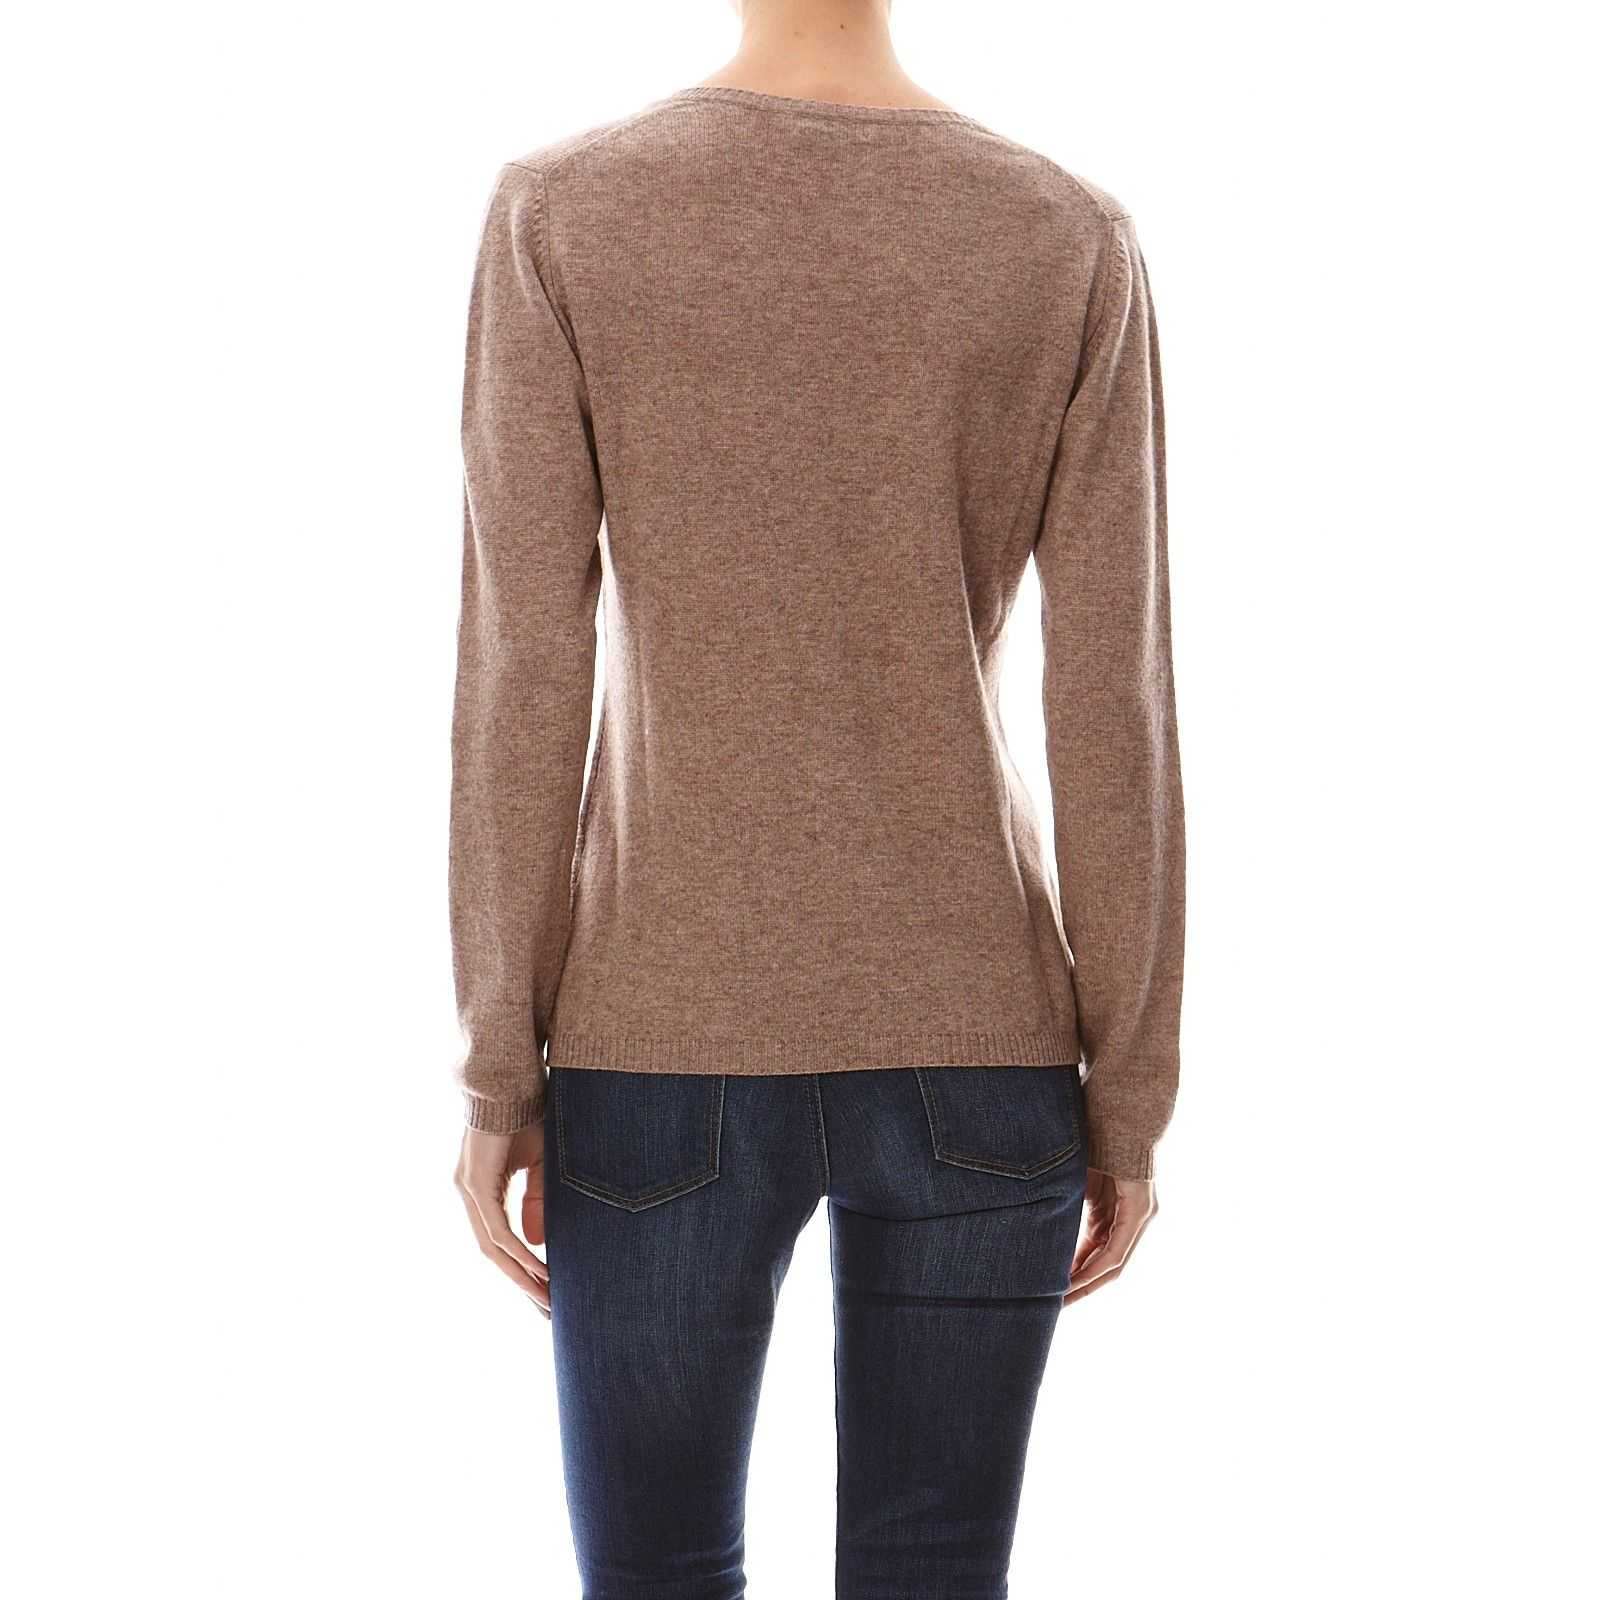 Synonyme Georges Rech Pull 100% cachemire - taupe   BrandAlley 62946728bb5